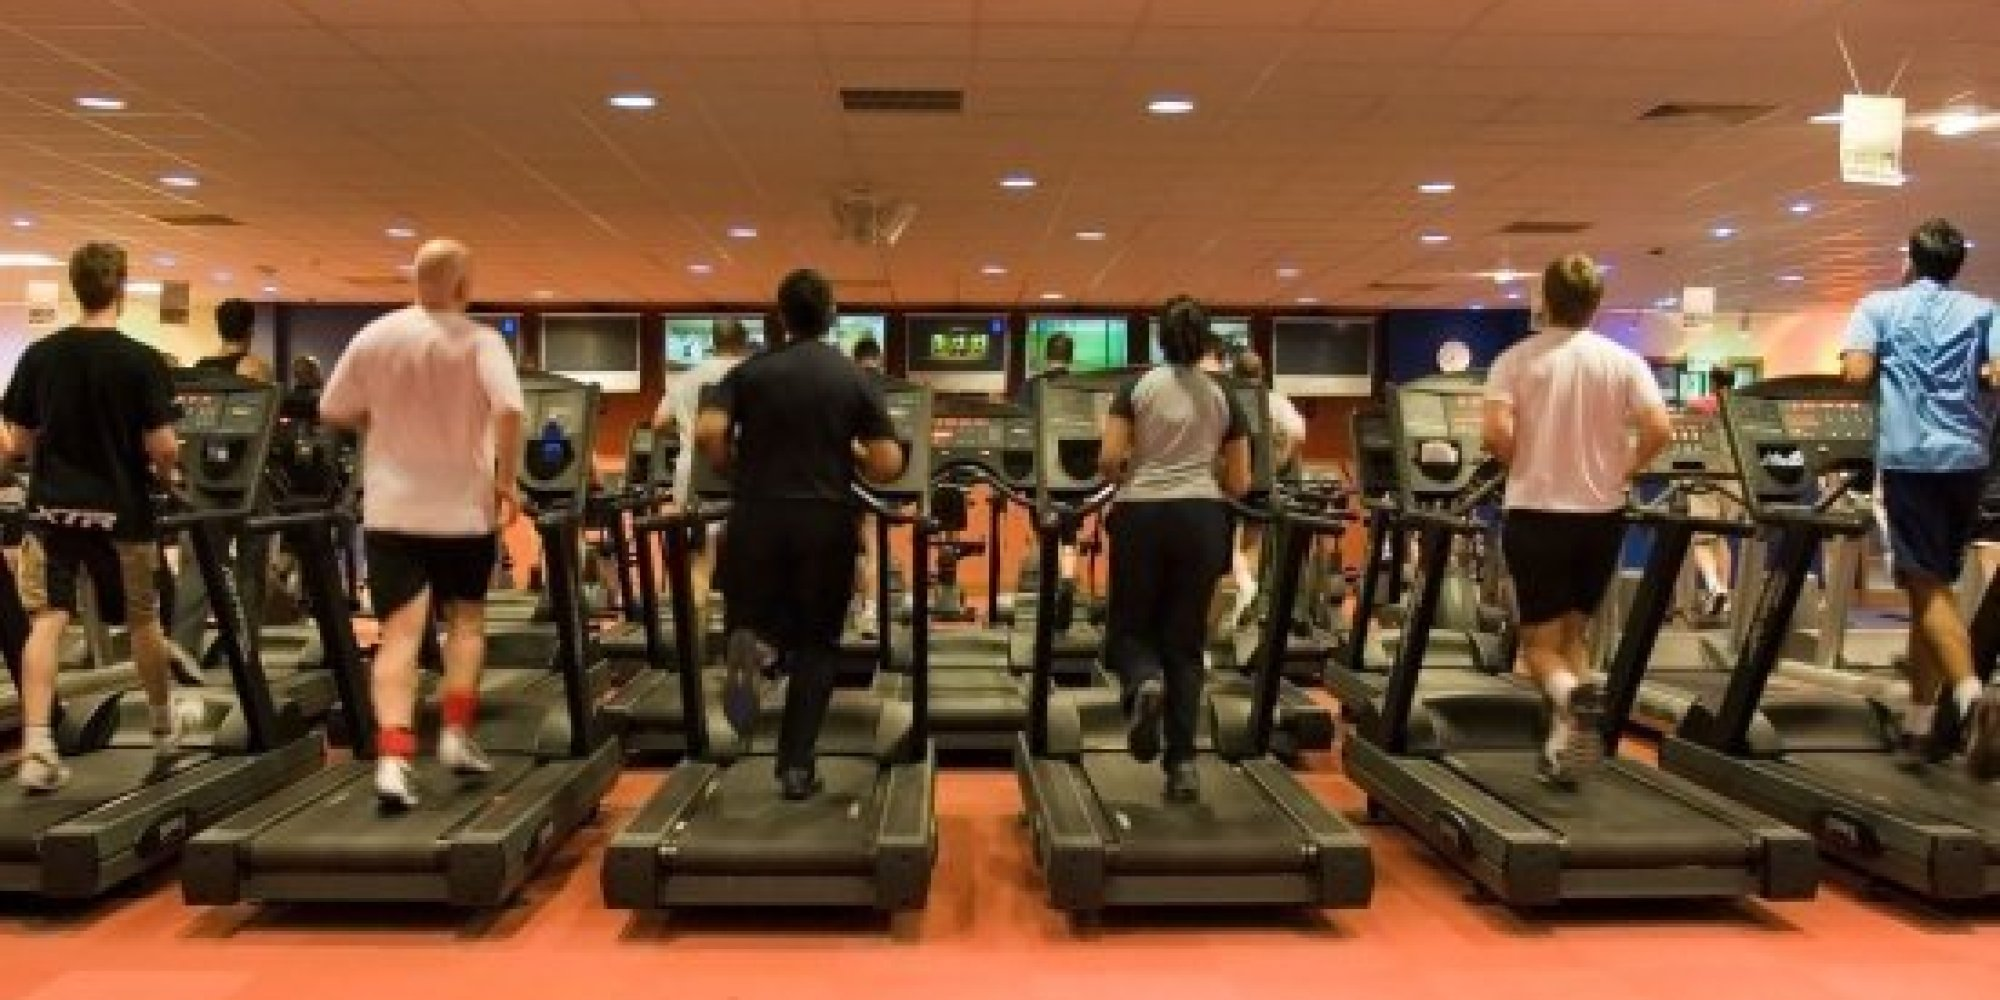 How To Navigate Over-Crowded January Gyms